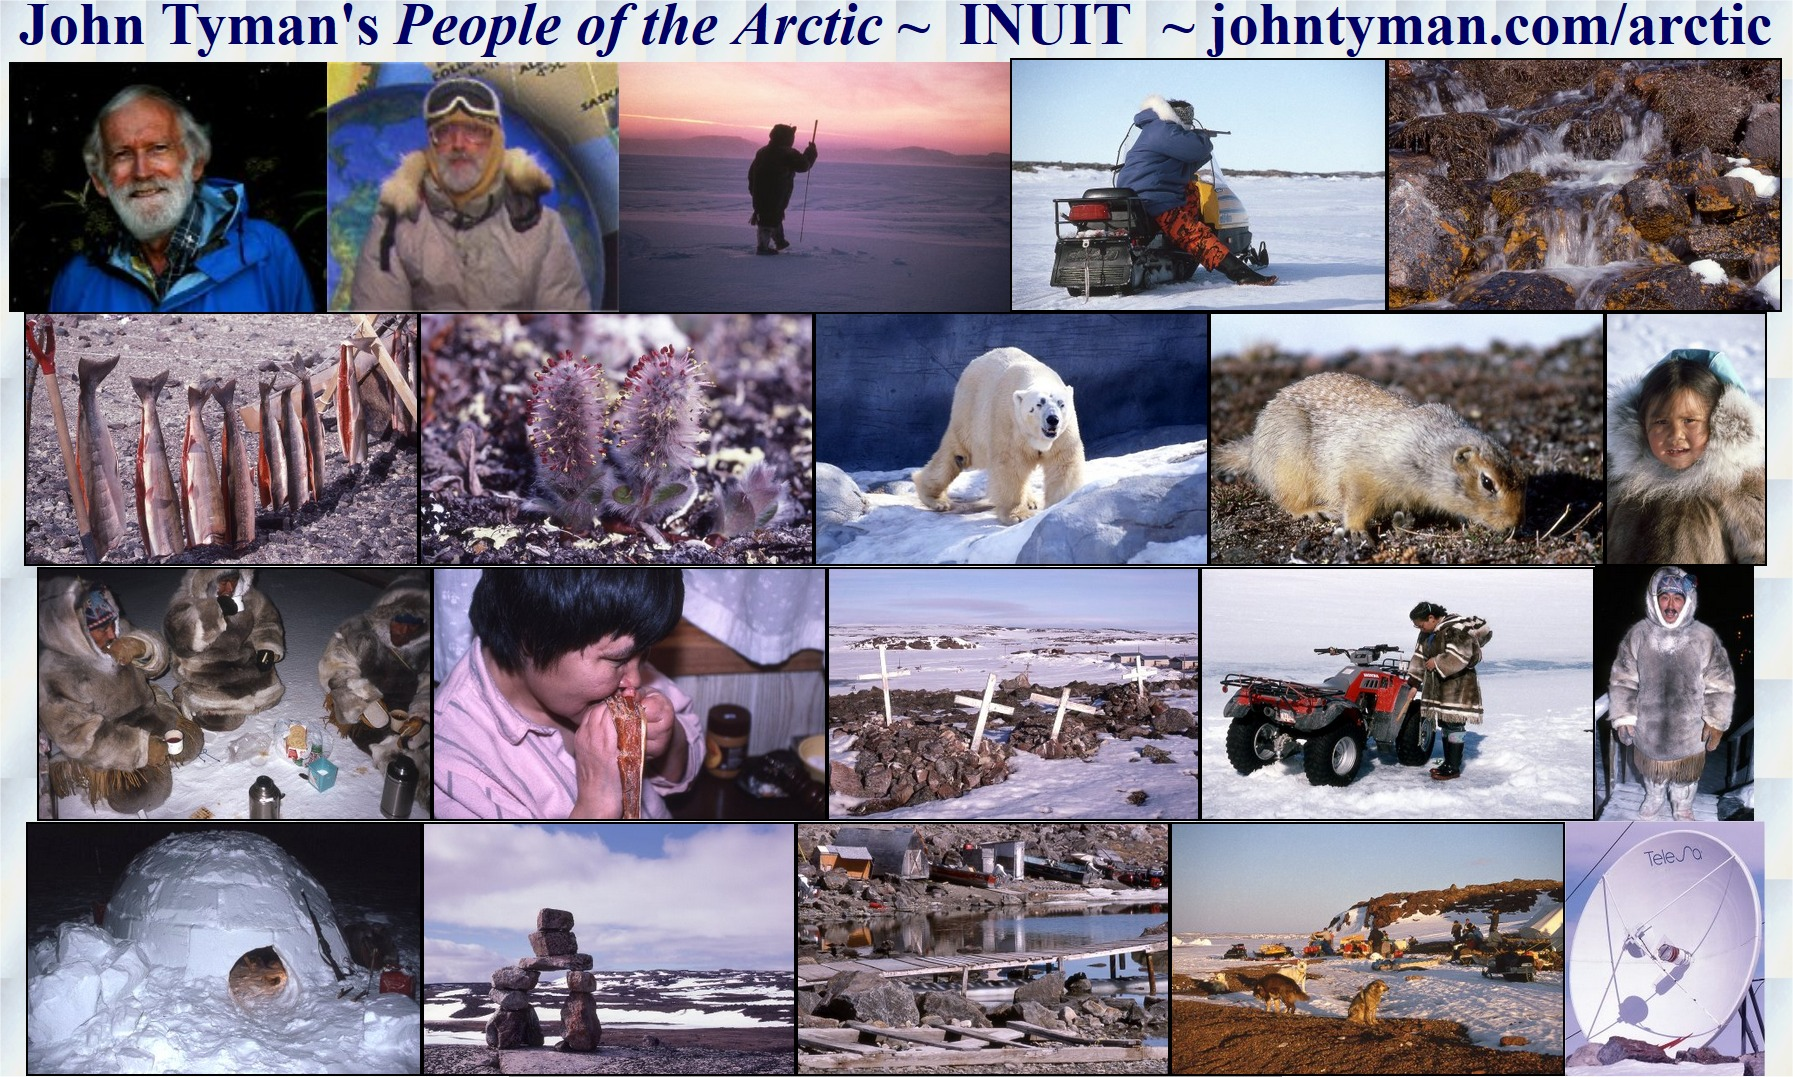 inuit people of the arctic by john tyman contents